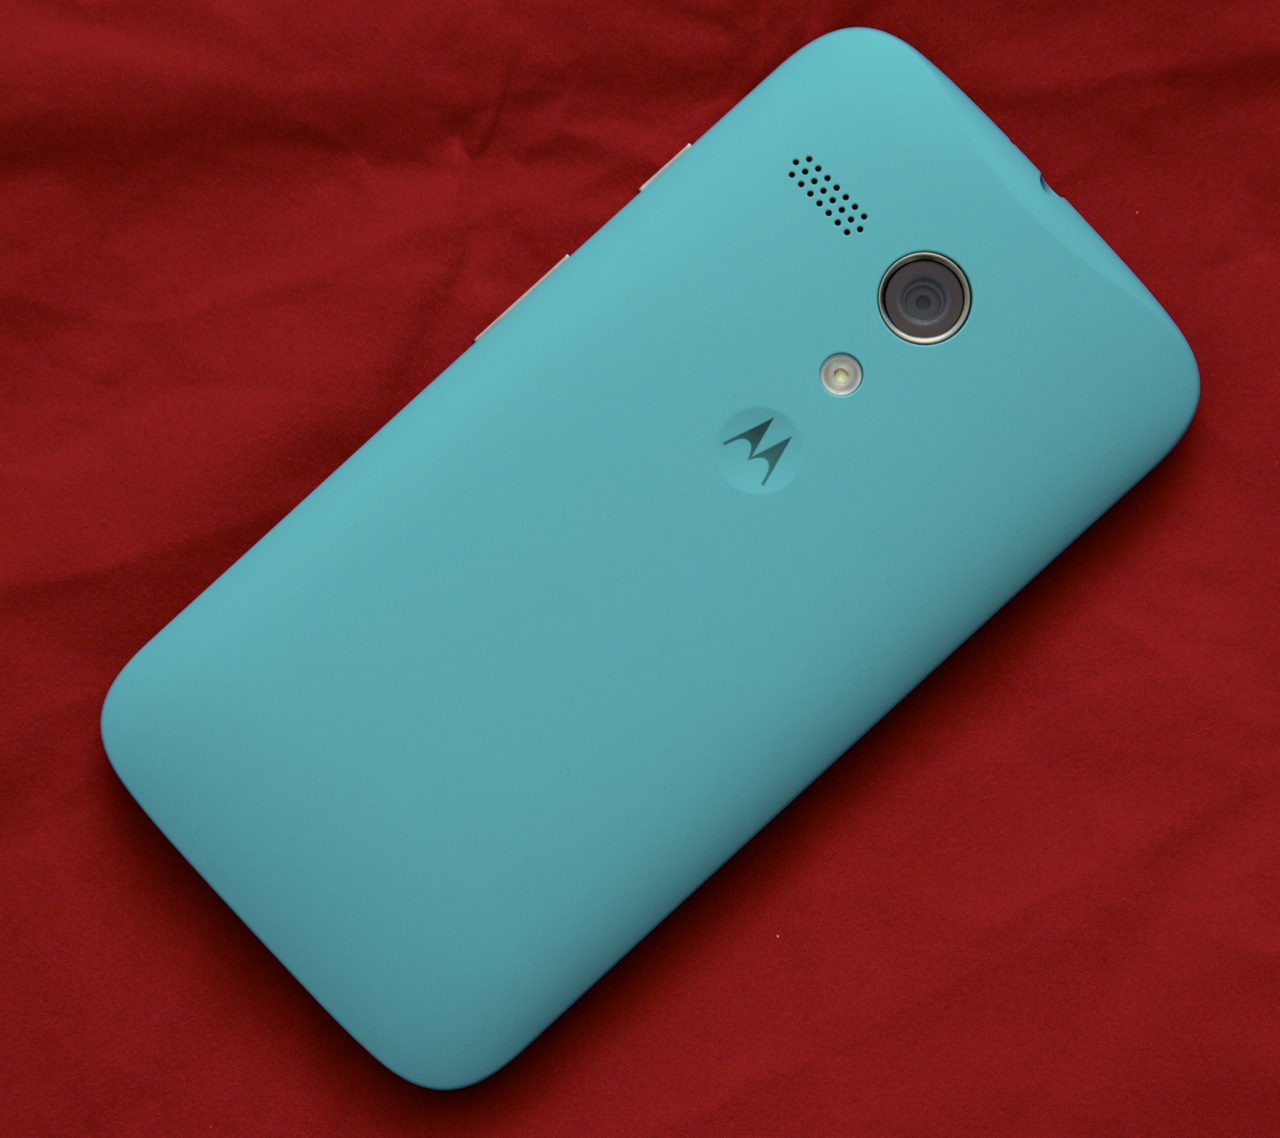 The Moto G has a curved plastic back that feels nice in the hand.